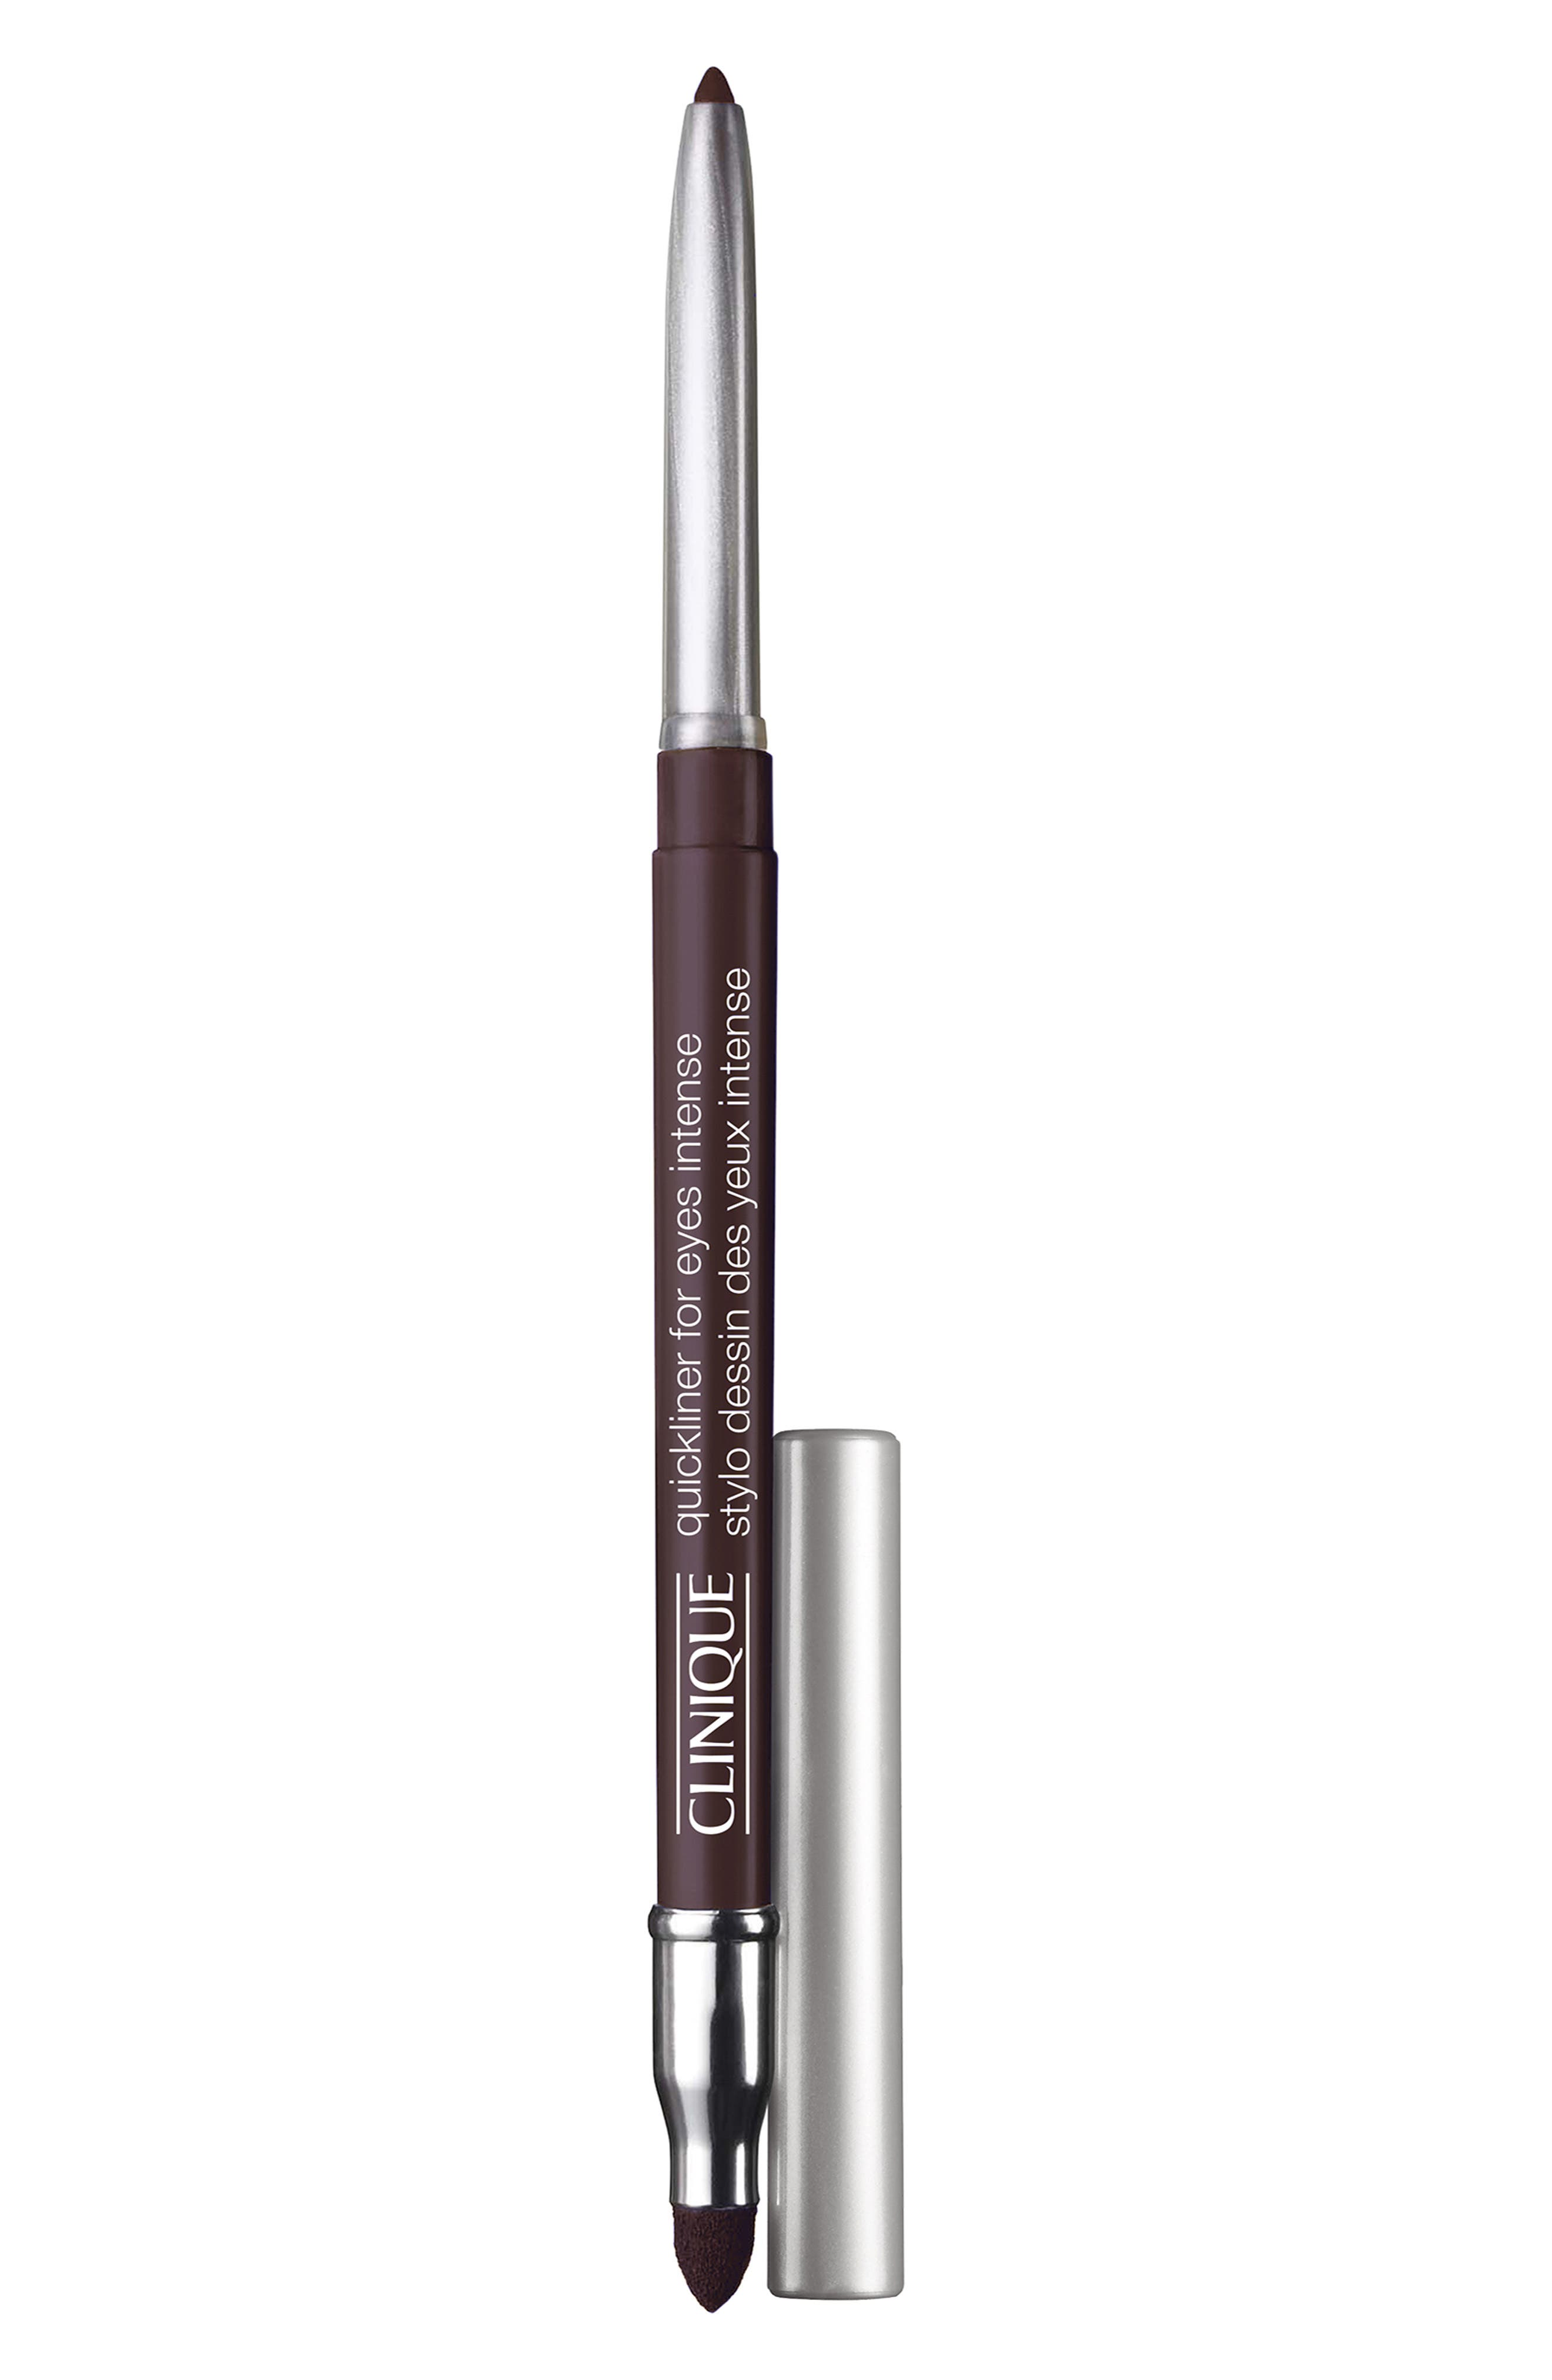 Clinique Quickliner For Eyes Intense Eyeliner Pencil - Intense Chocolate